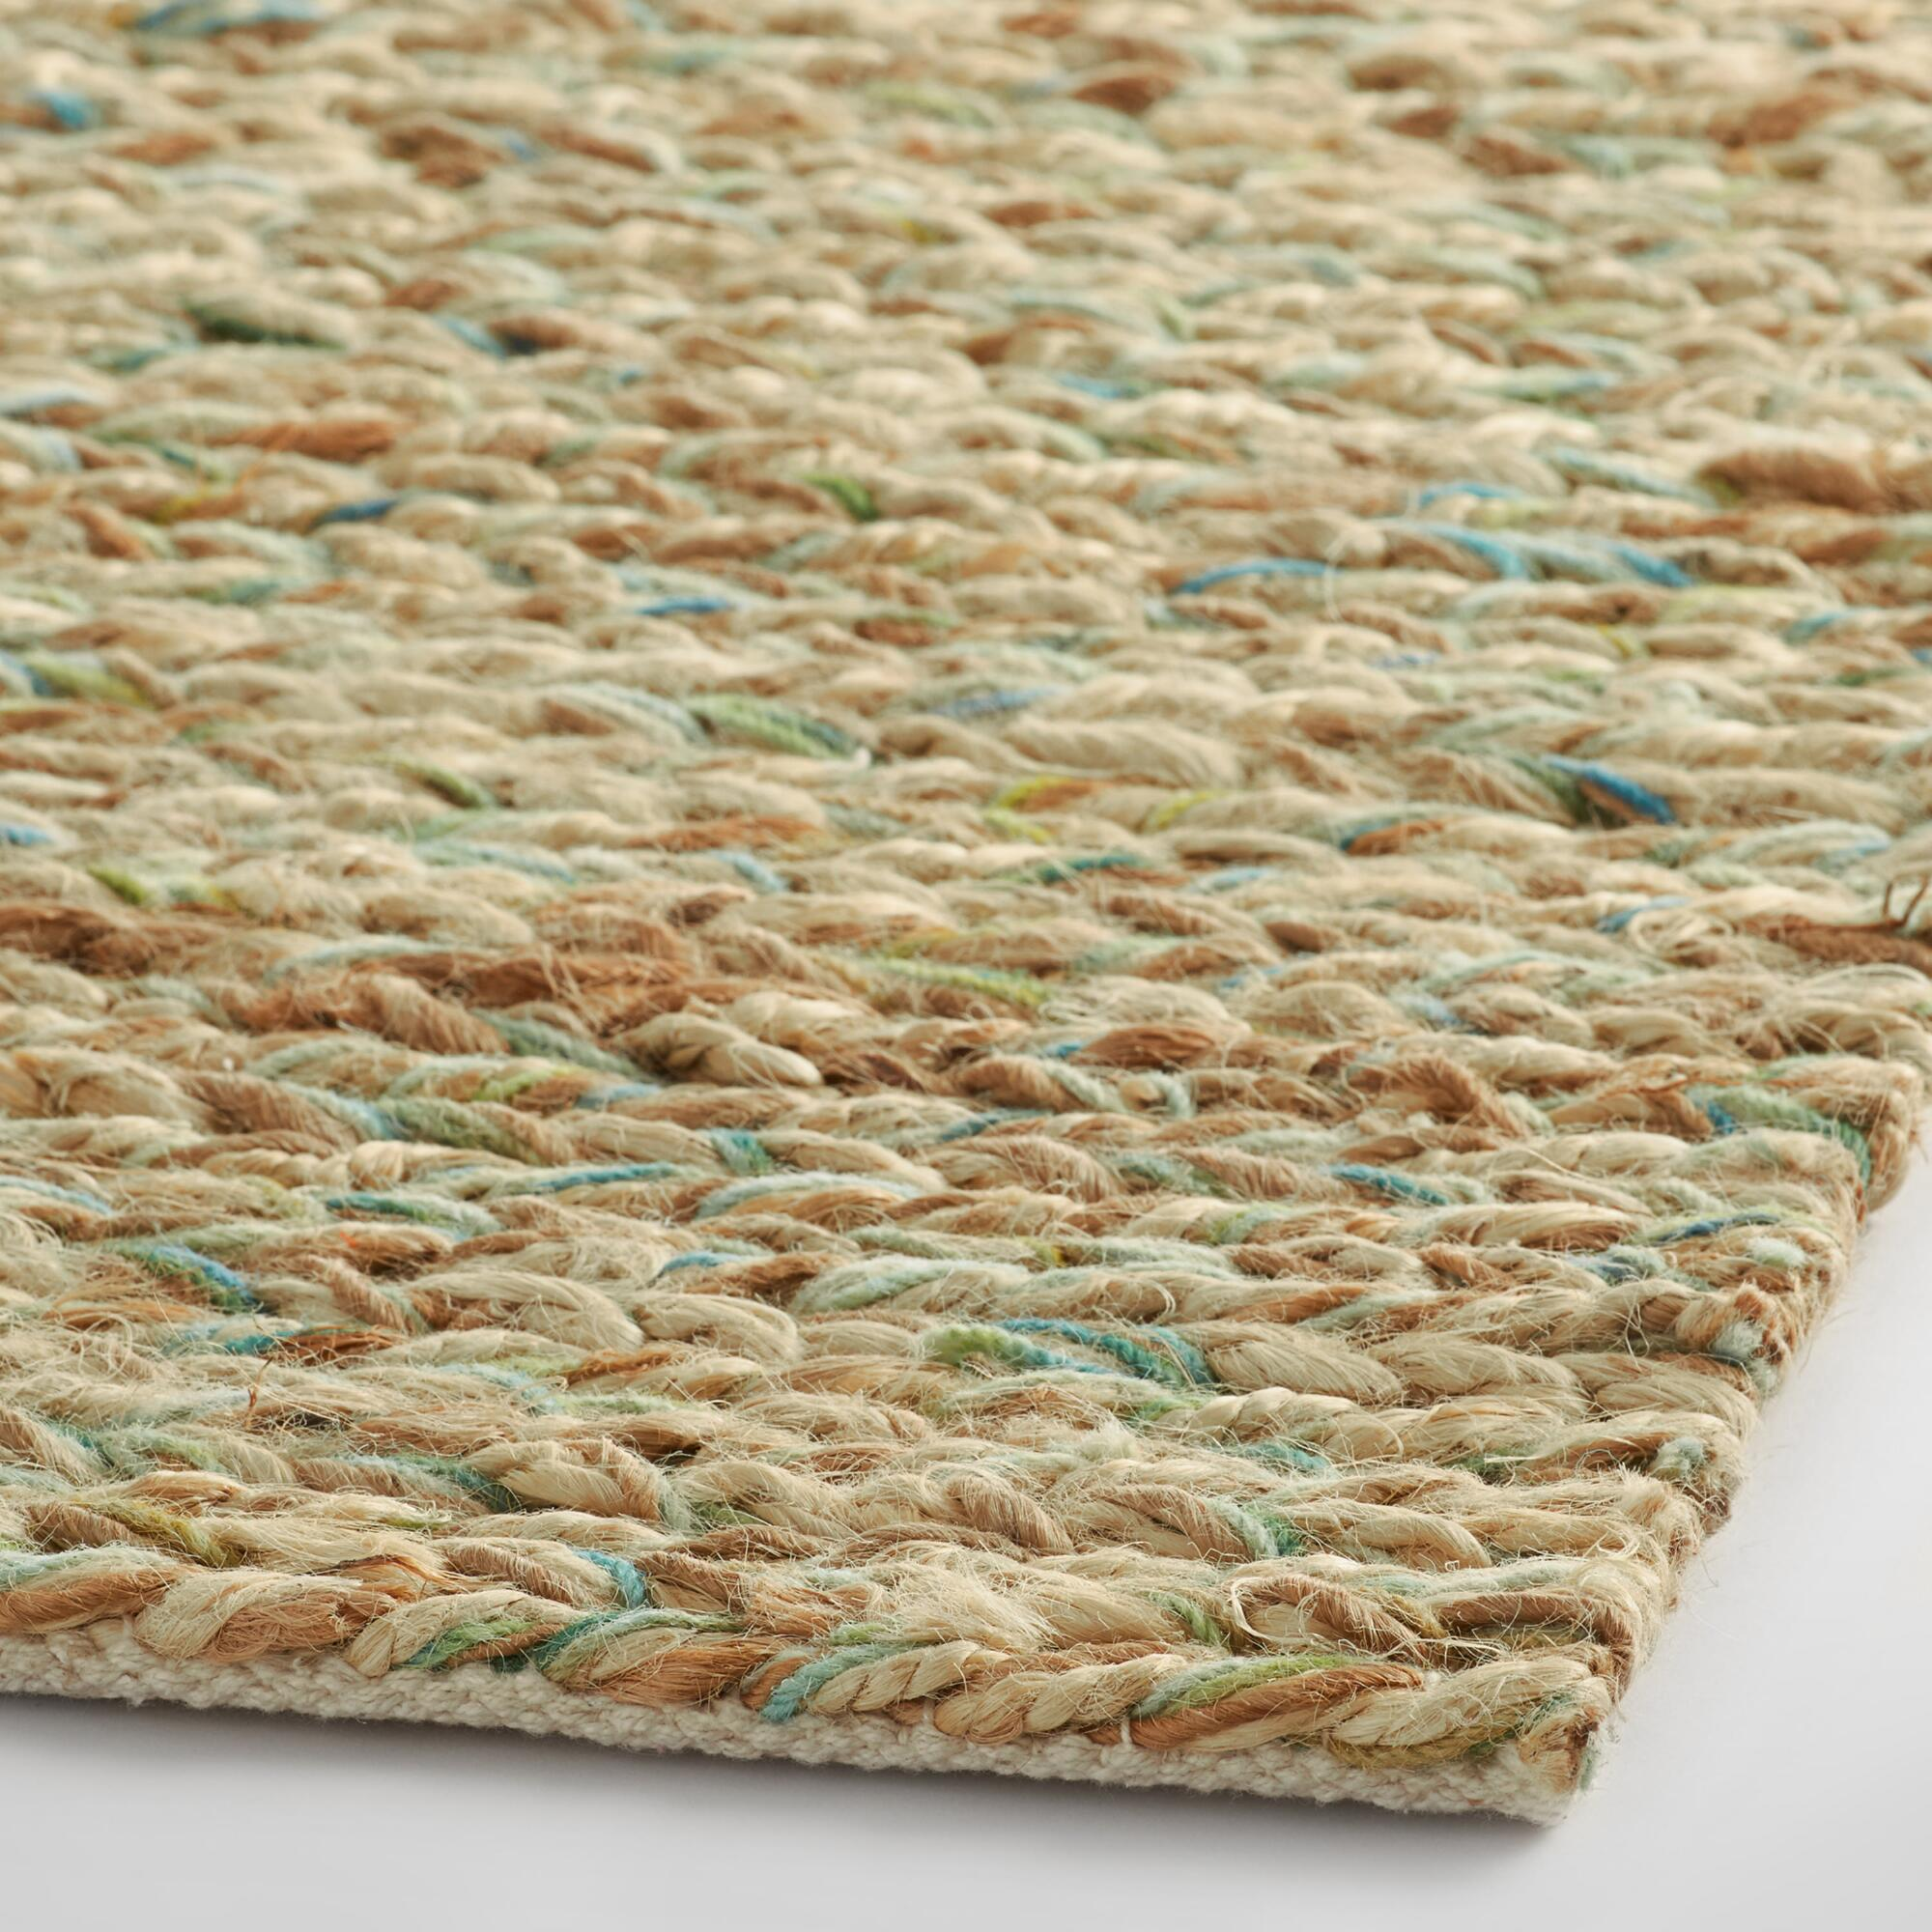 boucle net a jute ikea ikeaunky large braided chunky rugs new unique round colors pics photos of australia rug